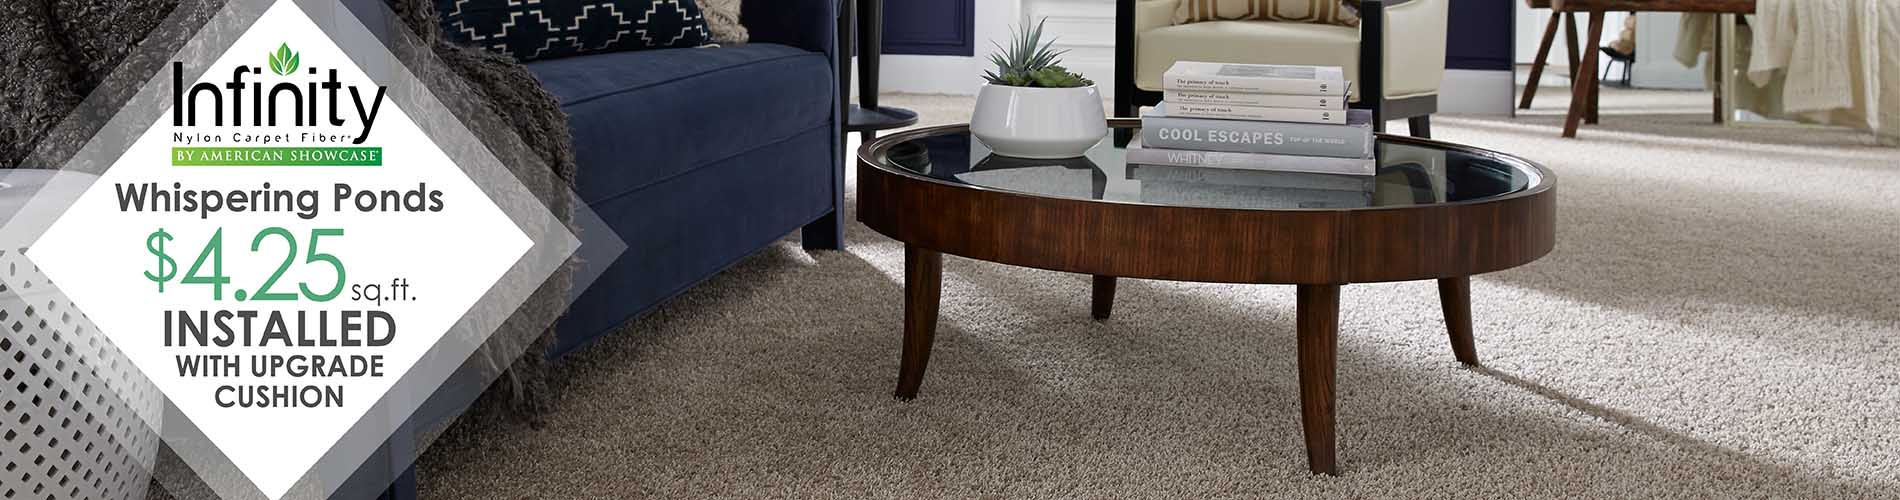 INFINITY CARPET COLLECTION Whispering Ponds $4.25 sq.ft.  INSTALLED With Upgrade Cushion